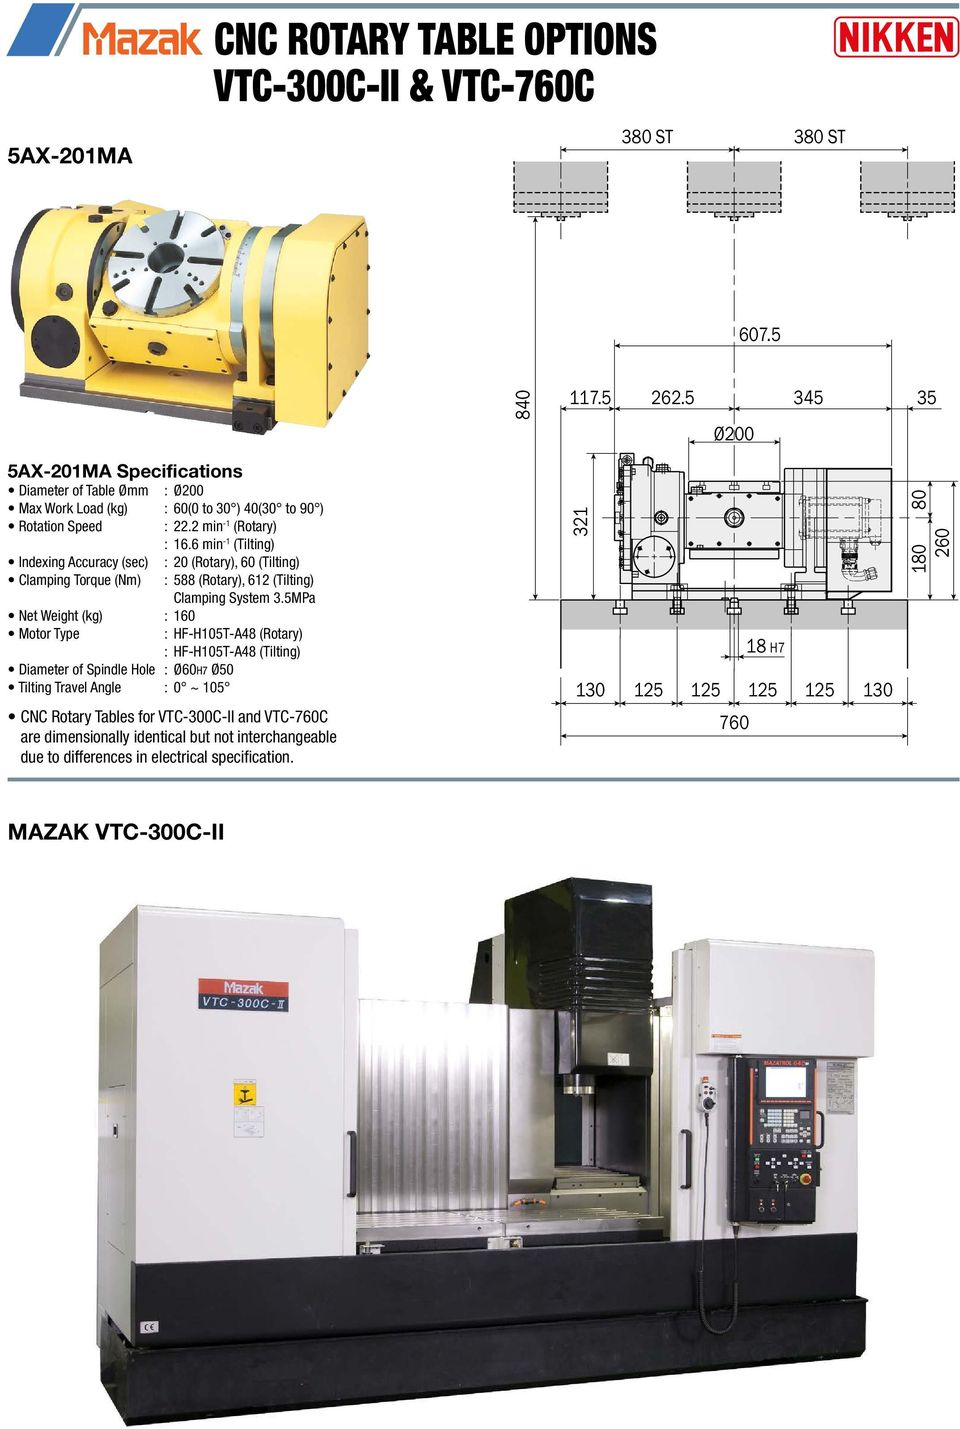 6 min -1 (Tilting) Indexing Accuracy (sec) : 20 (Rotary